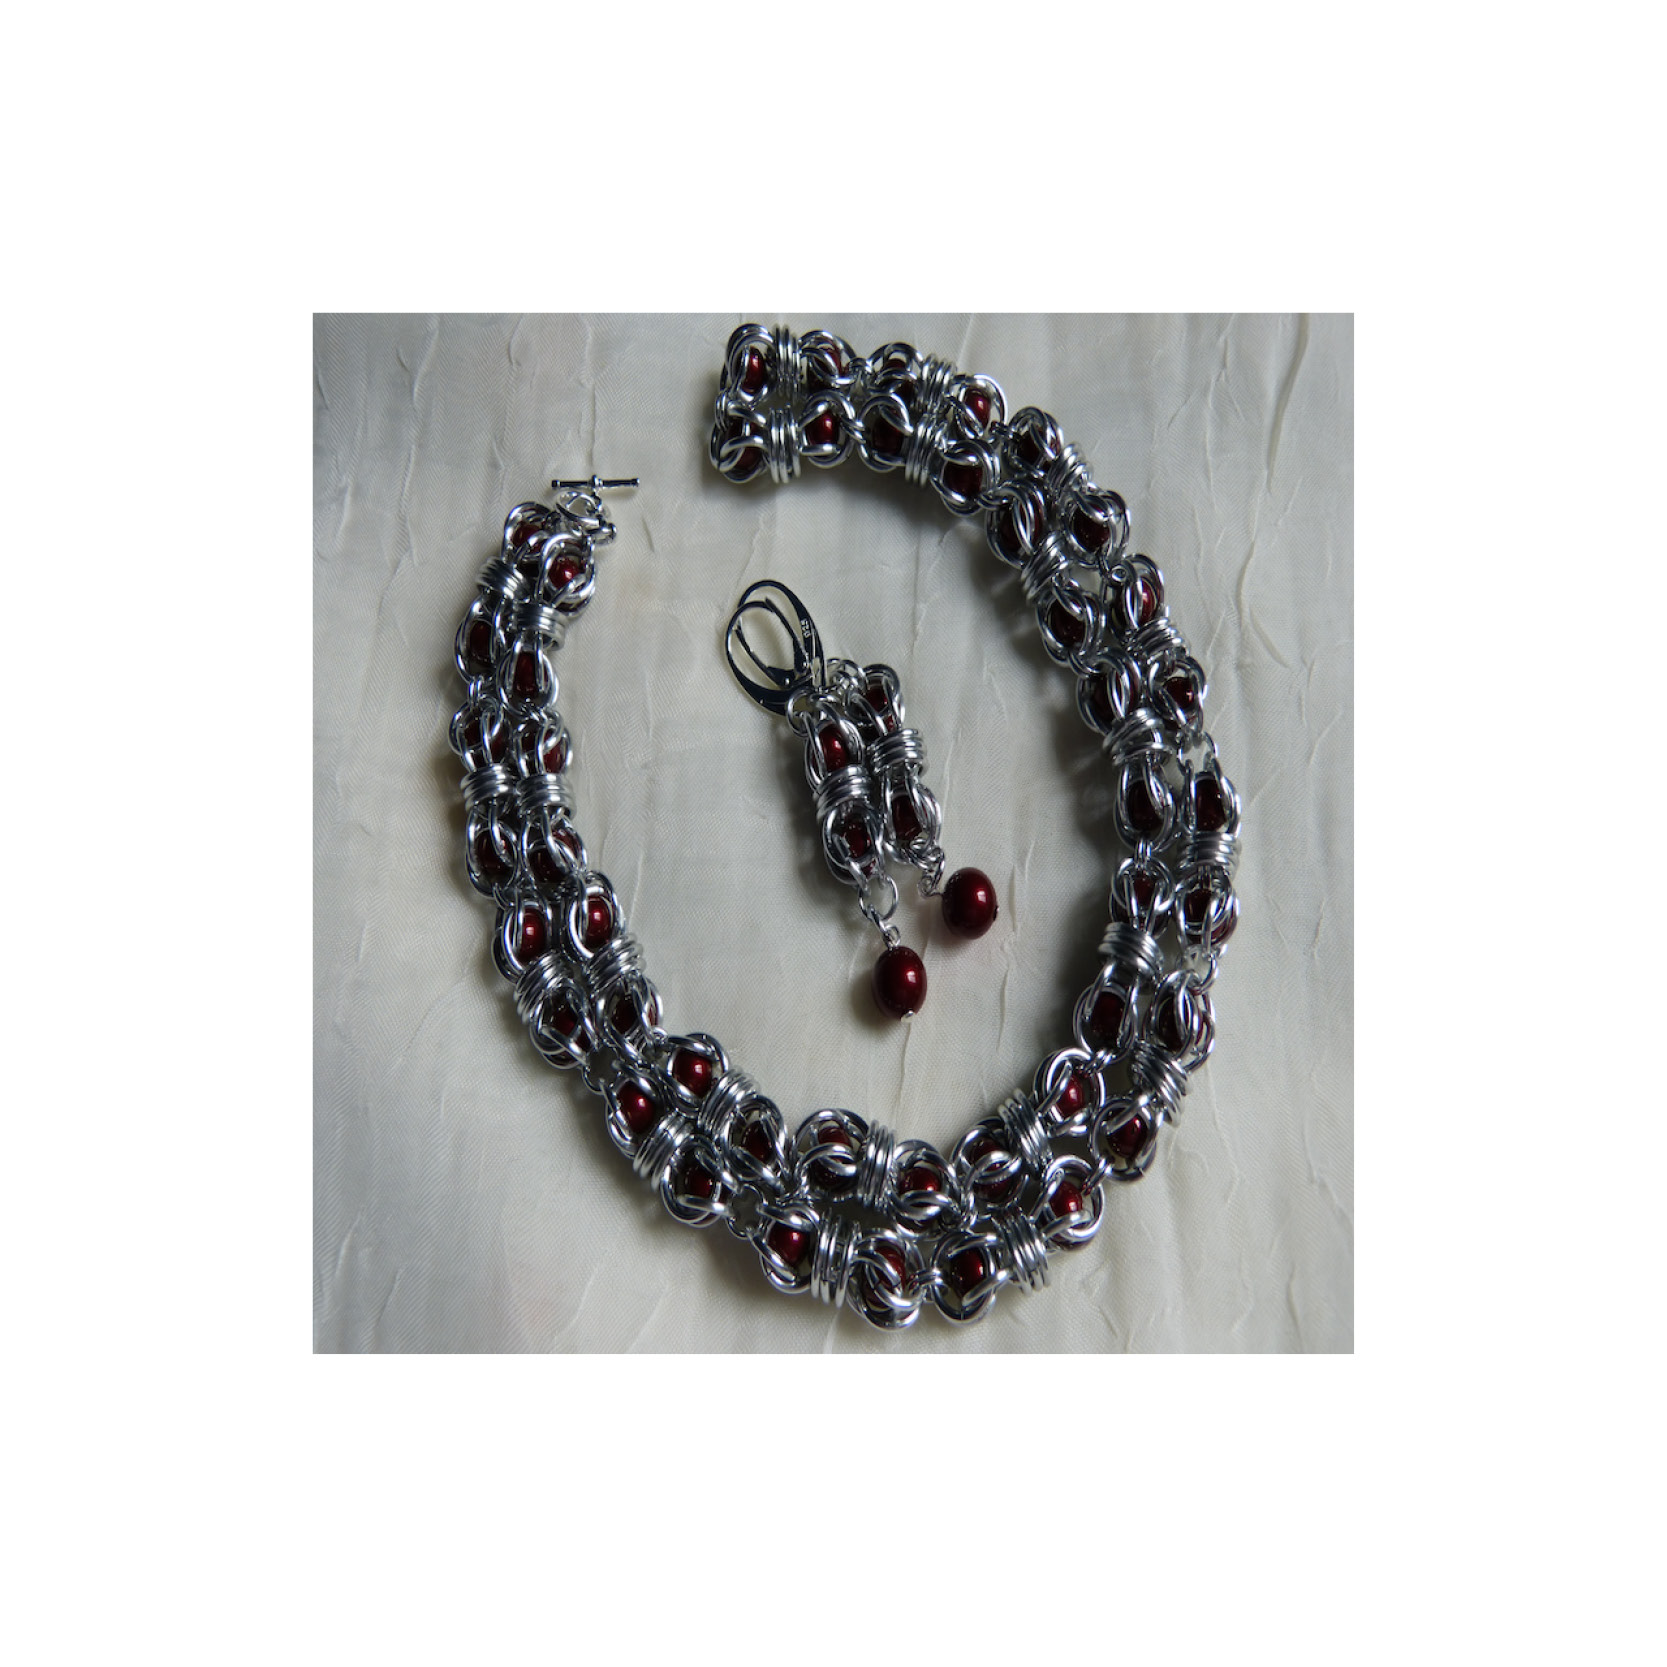 Joy Davenport - Chain Maille necklace